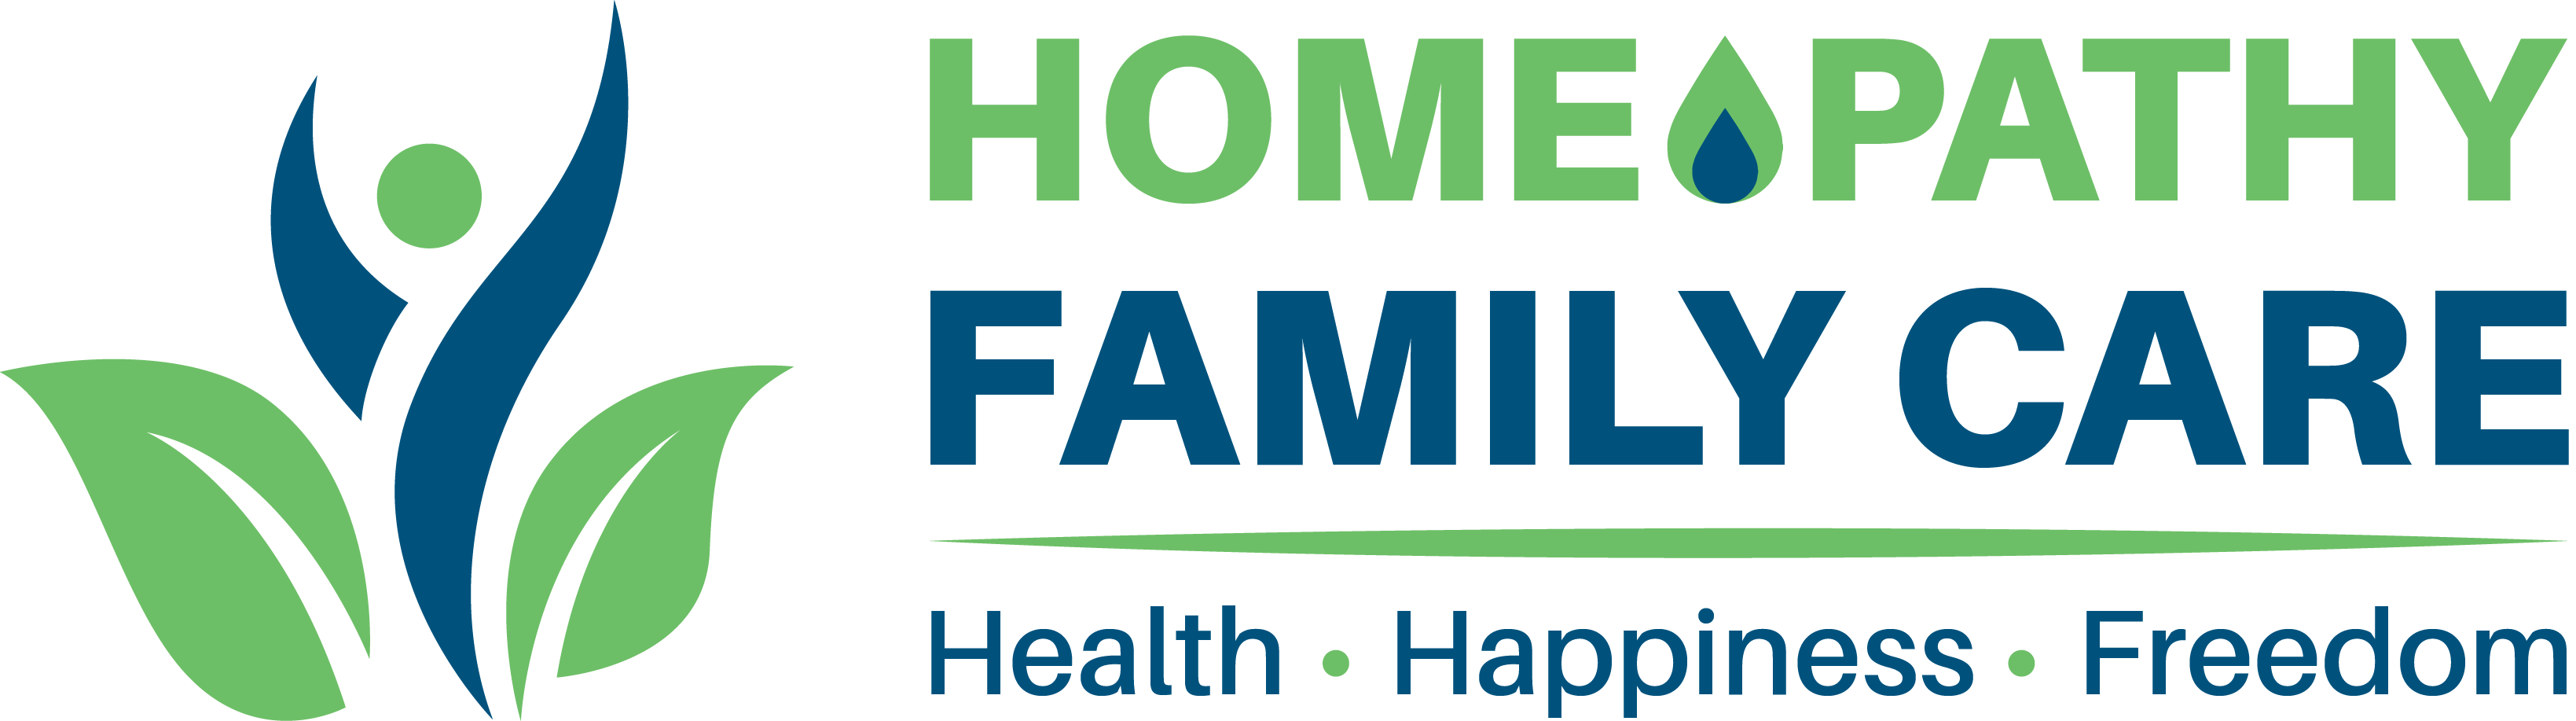 Homeopathy Family Care